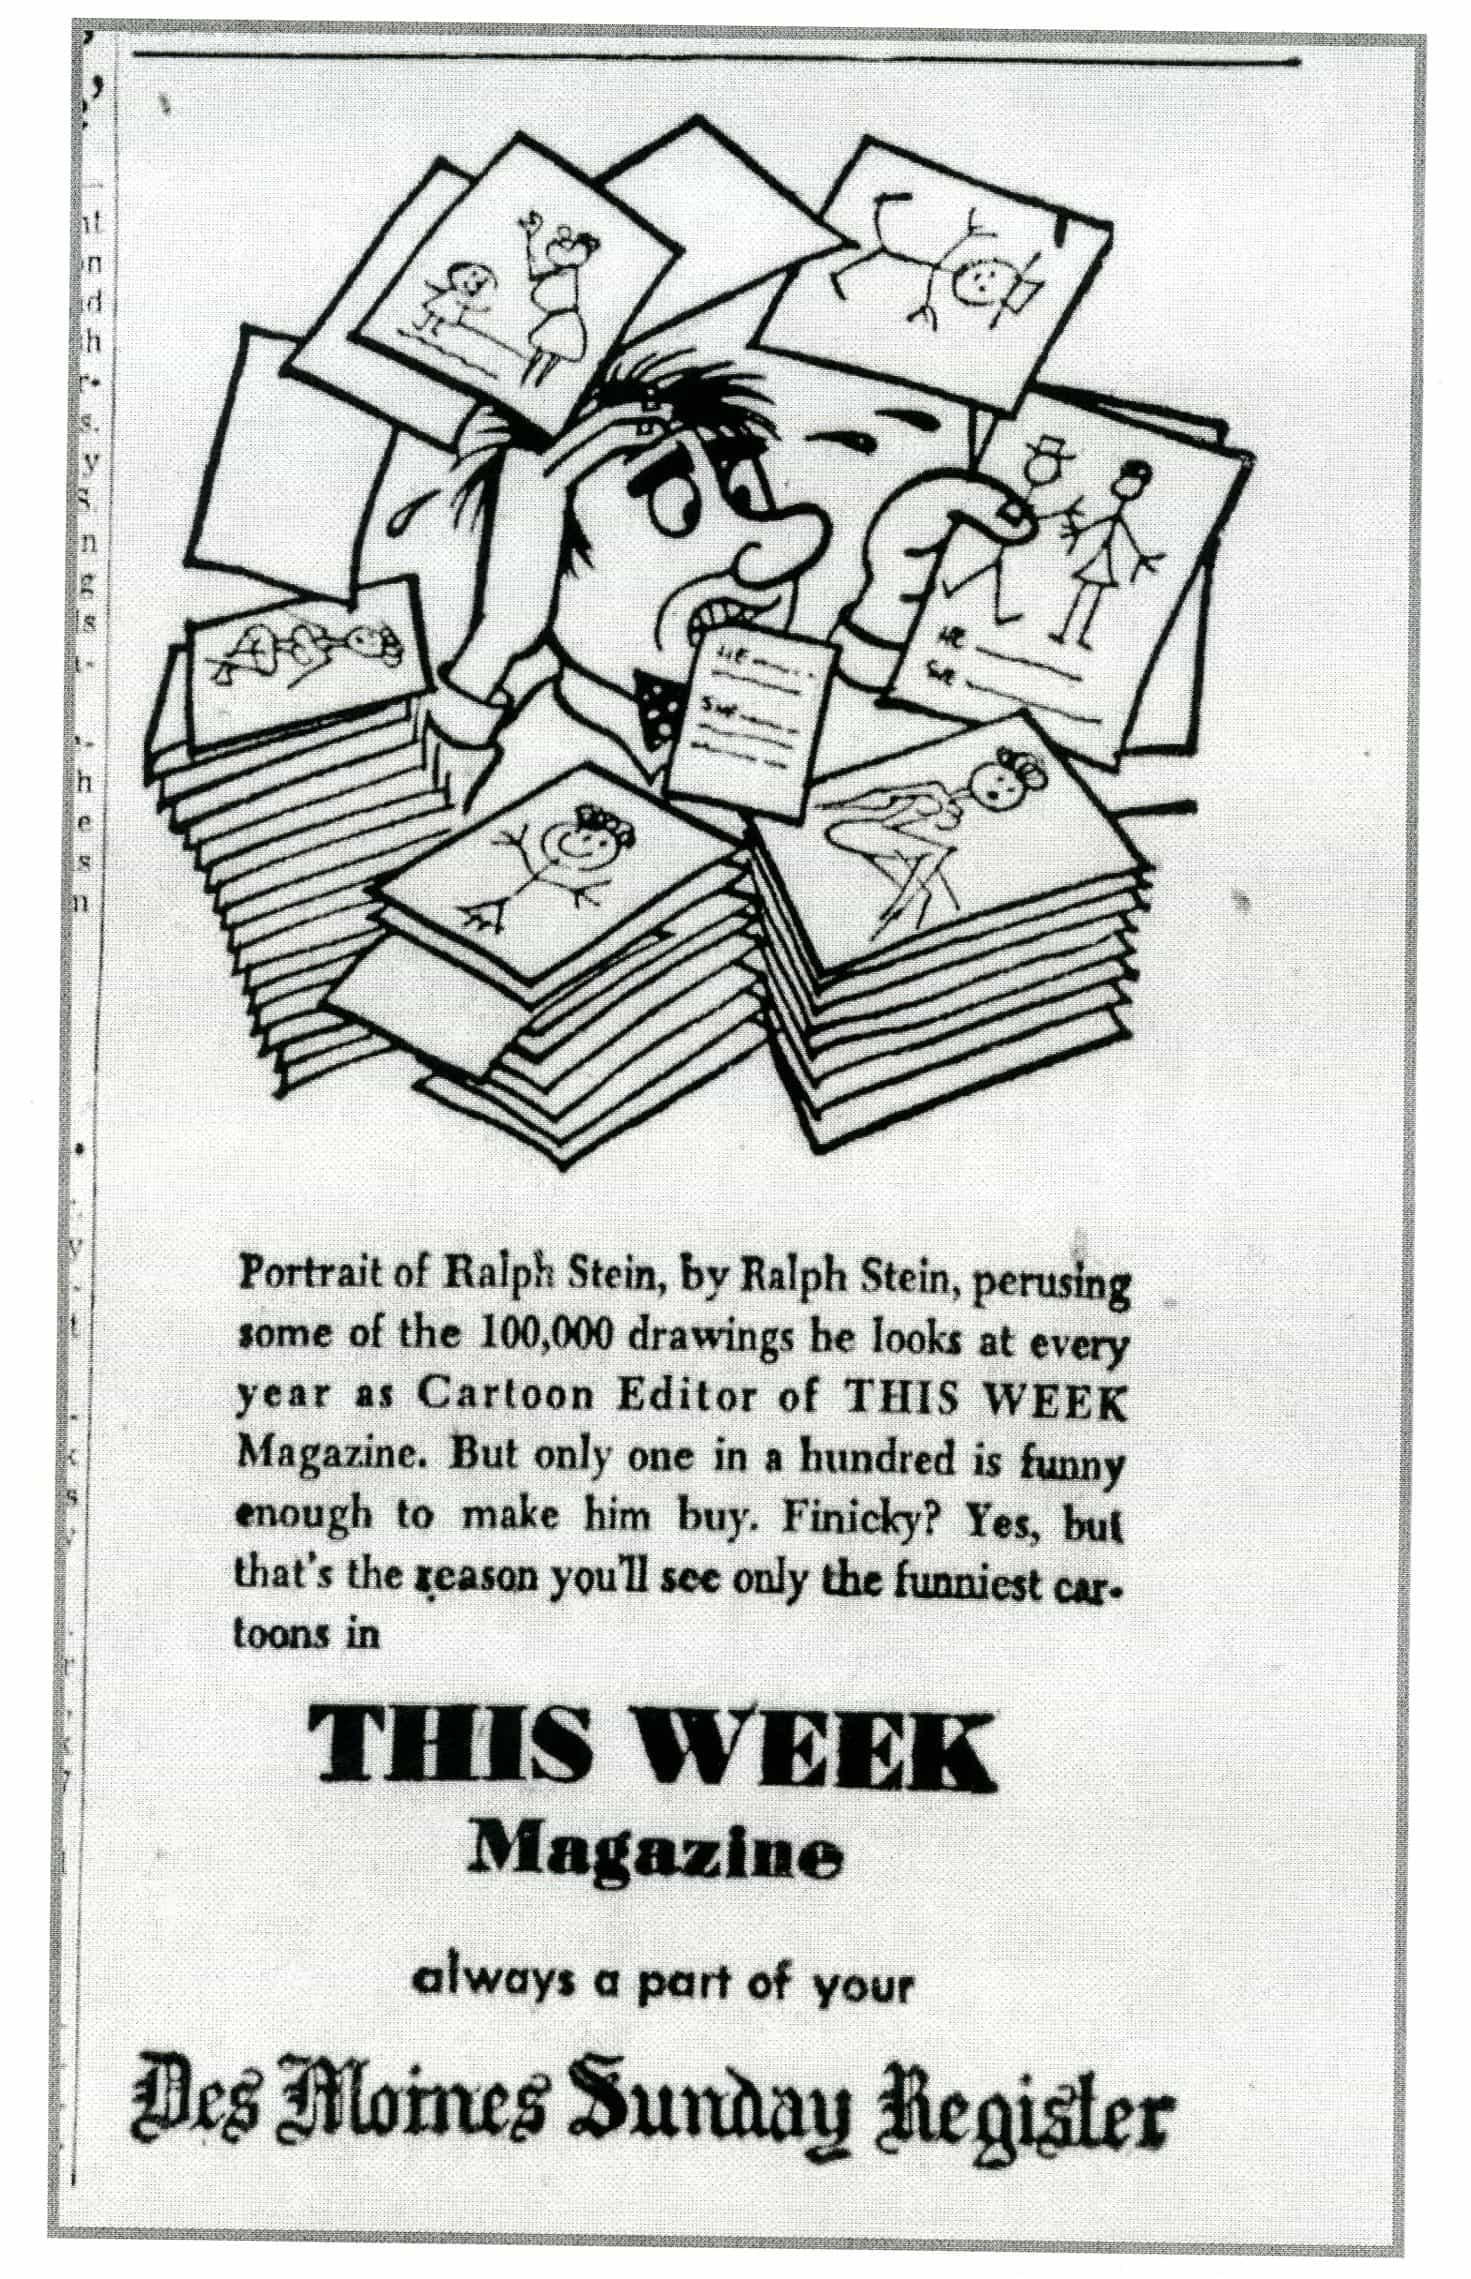 About Ralph Stein ad. July 25, 1953. In the history of Popeye the Sailor Man